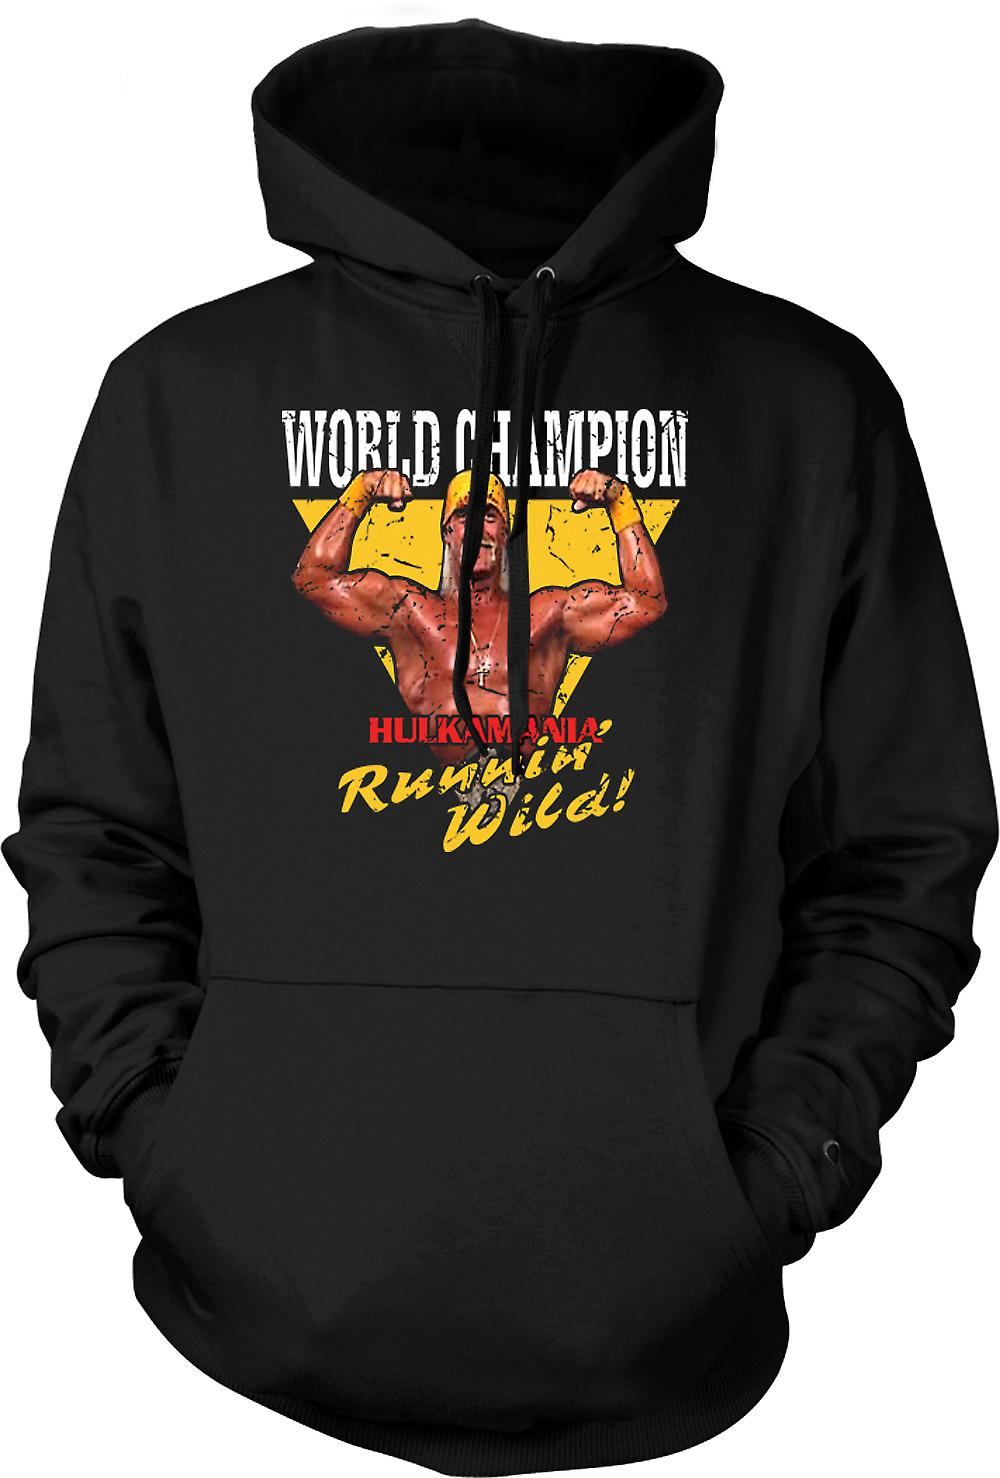 Mens Hoodie - World Champion - Hulk Mania Running Wild